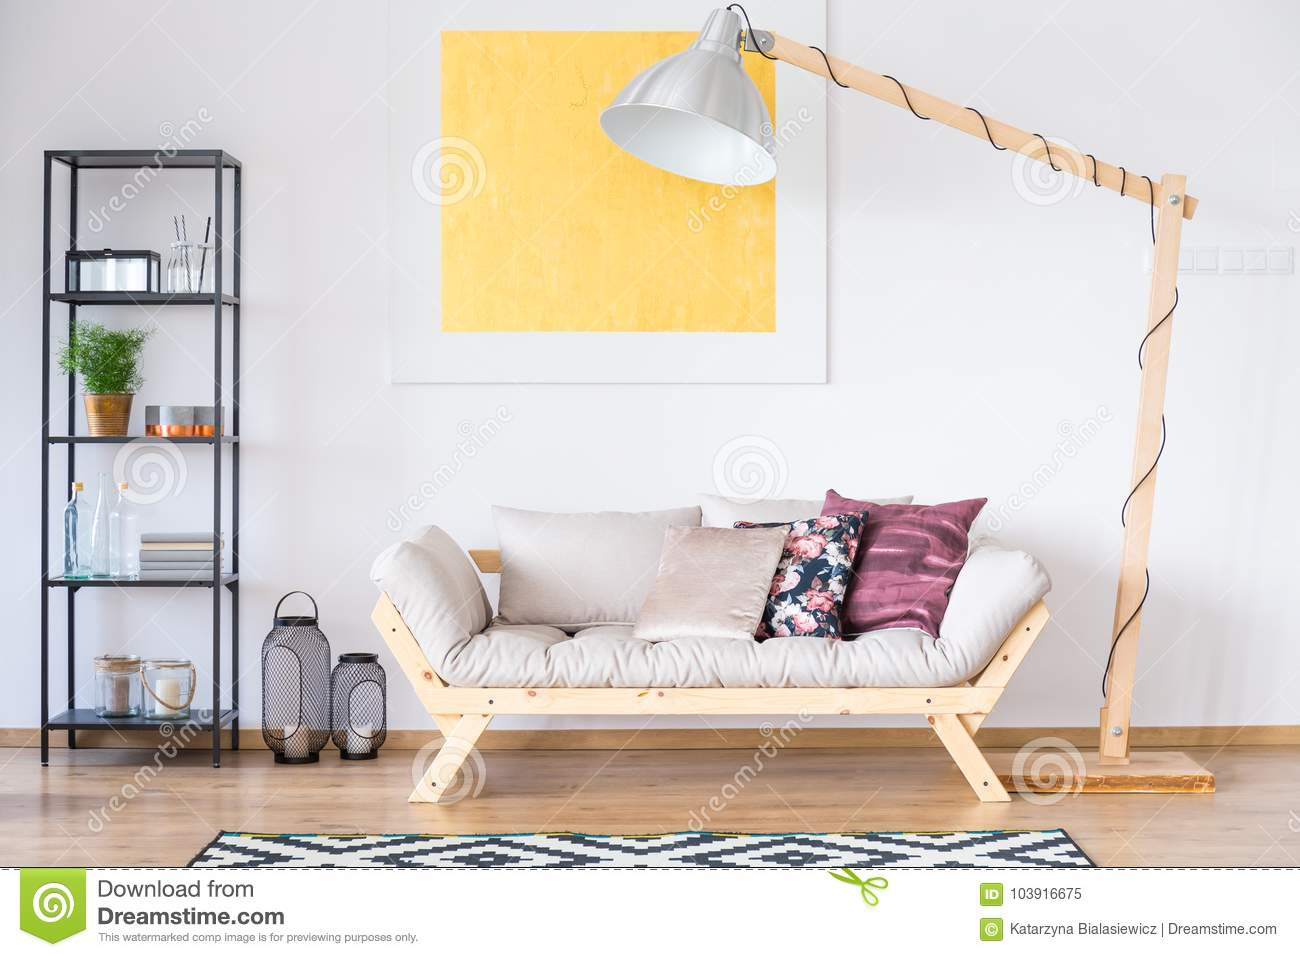 Enormous lamp standing by couch